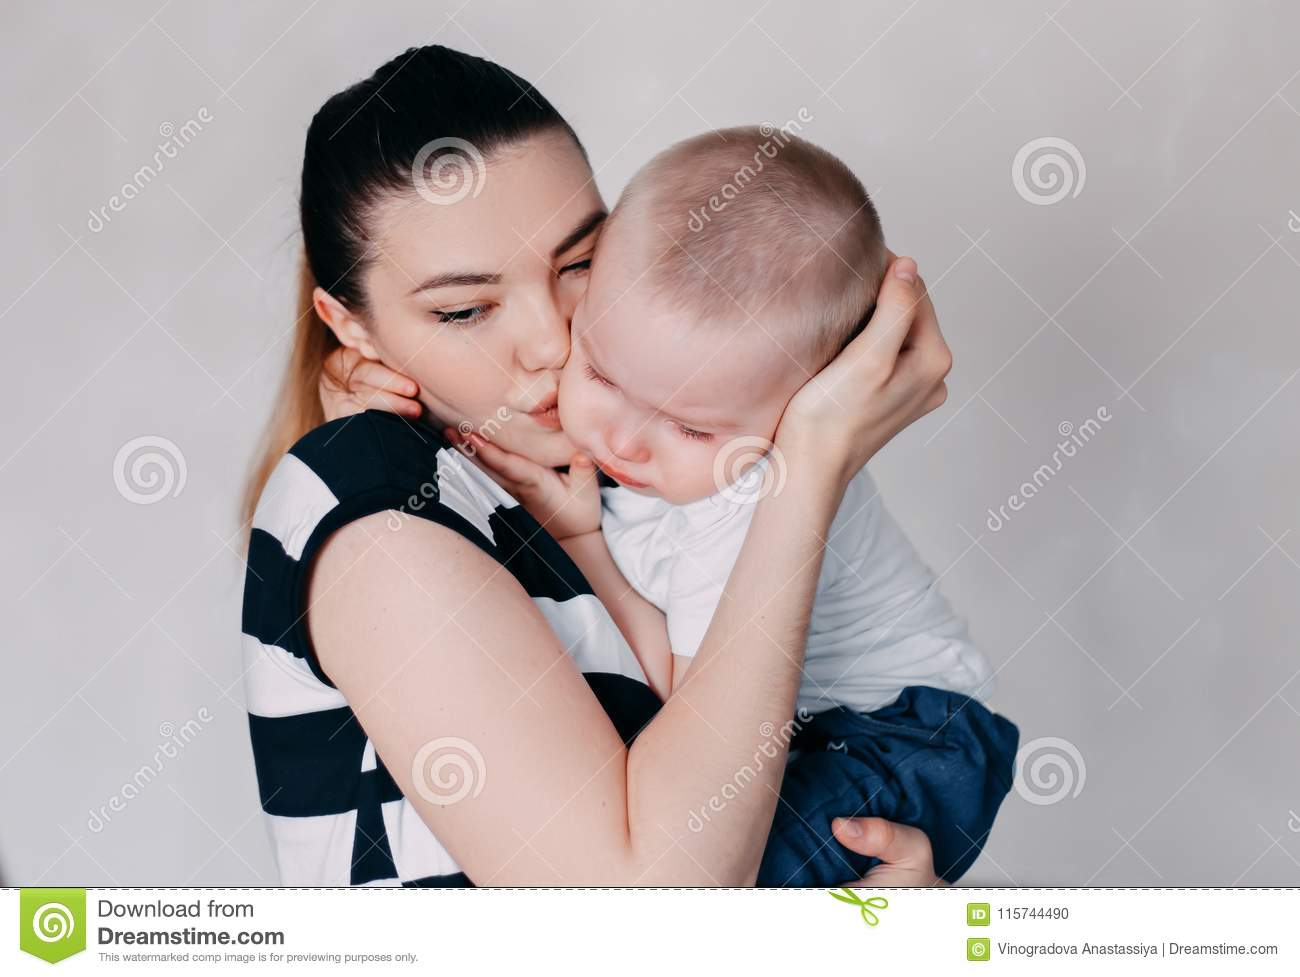 Crying Toddler Girl Being Consoled By Her Mother Stock Photo Image Of Concept Childhood 115744490